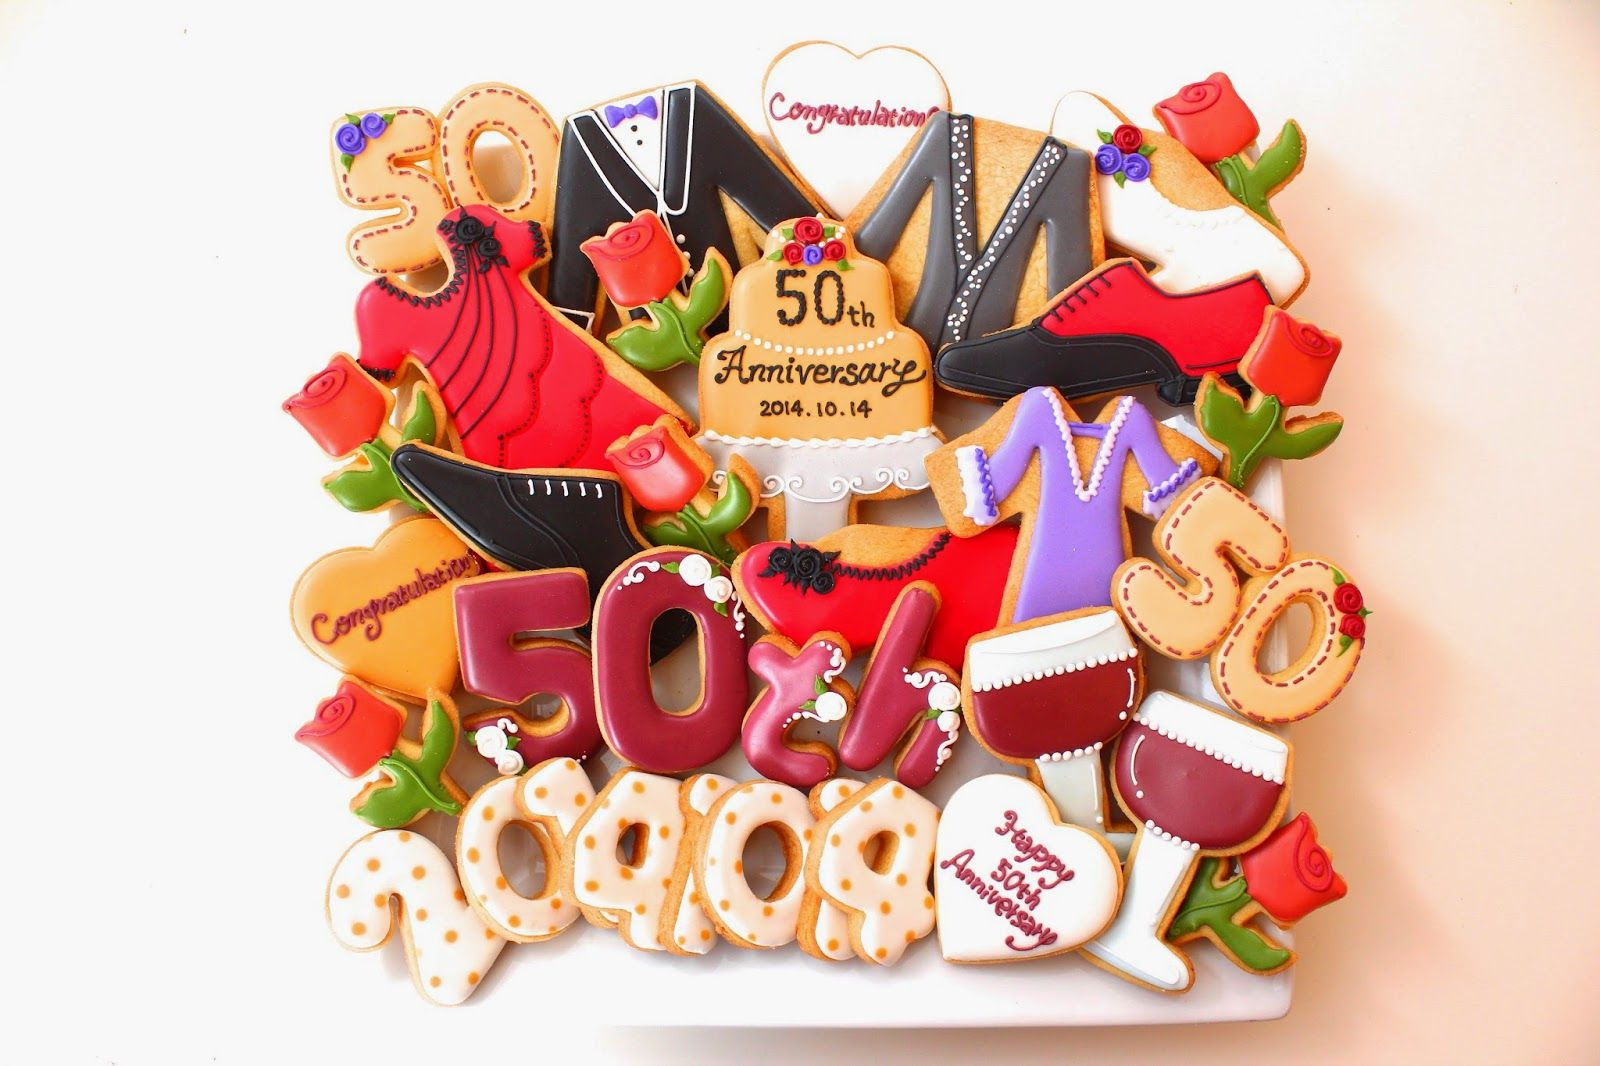 Sweeten your day.: 金婚式のアイシングクッキー 50th anniversary icing cookies